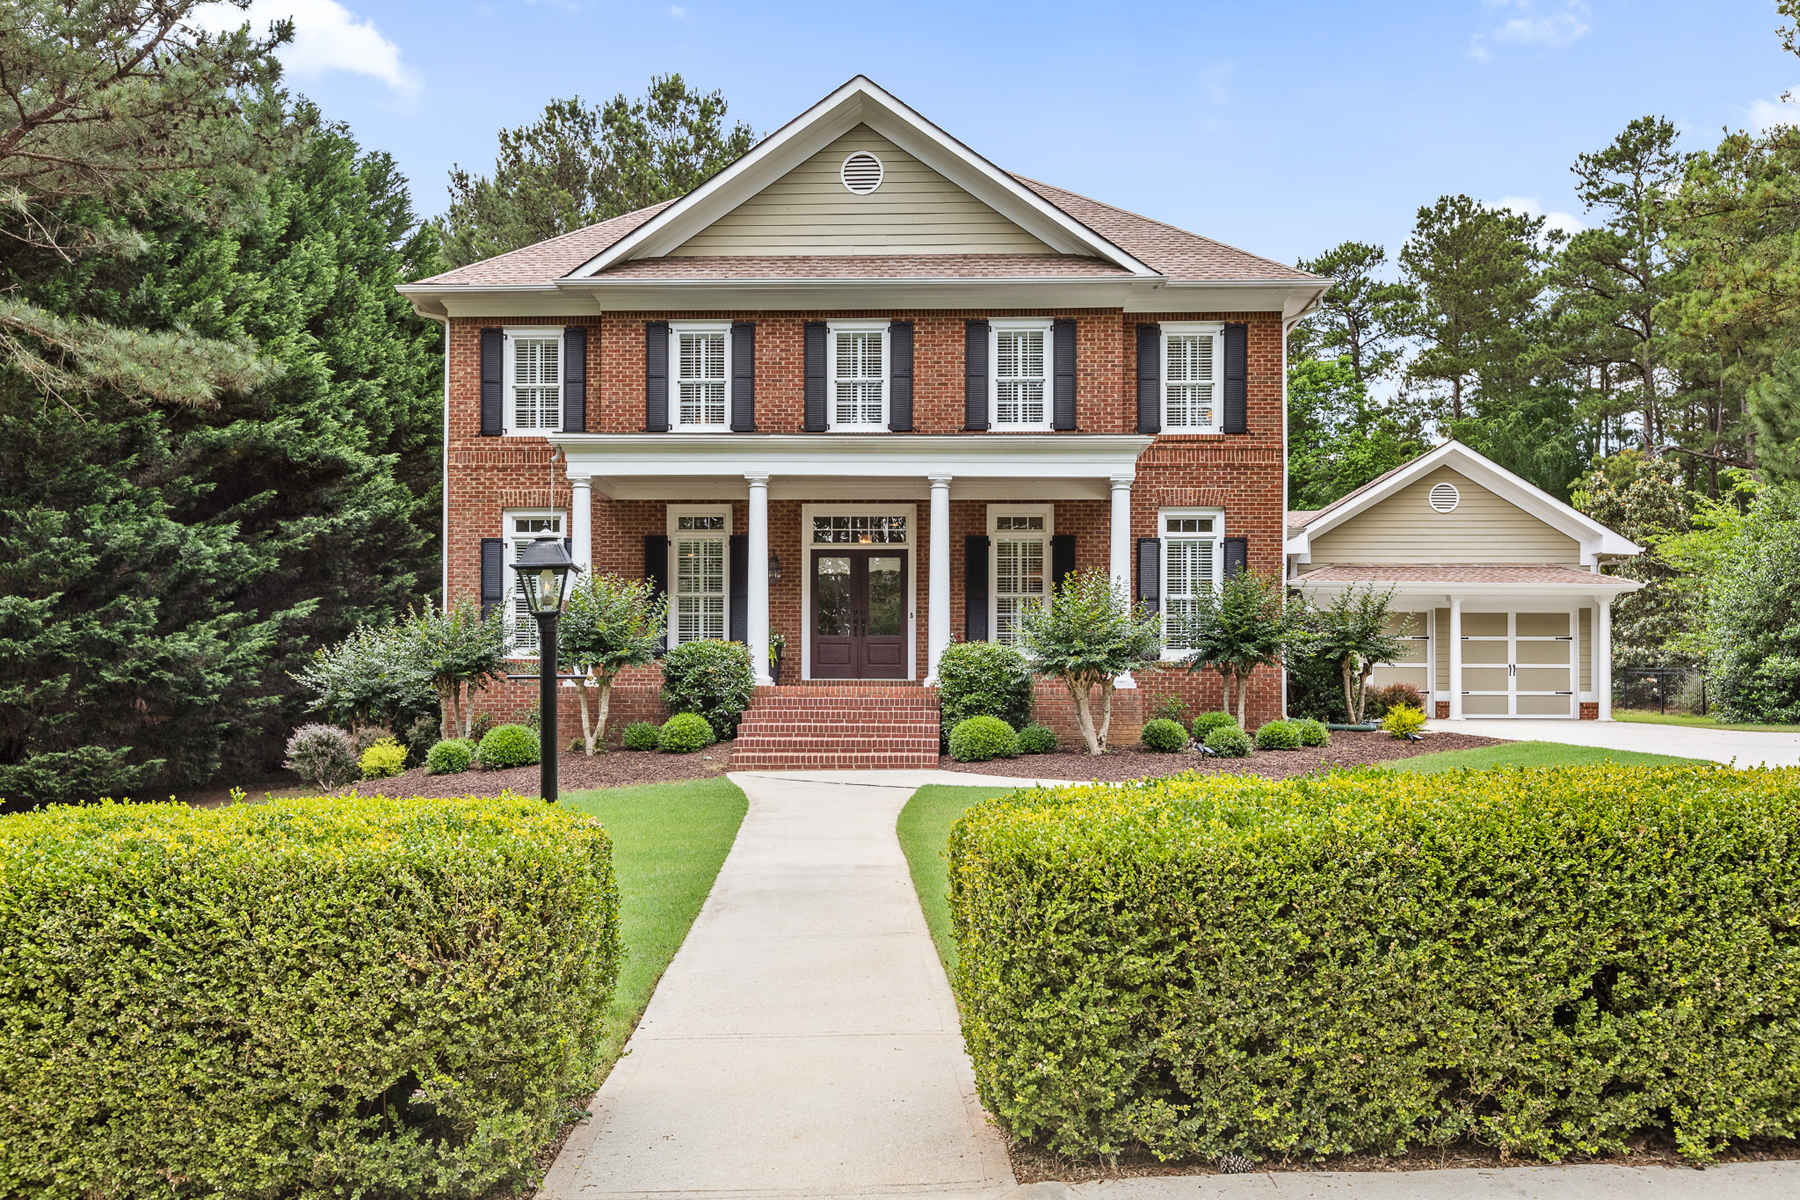 Single Family Homes for Active at Awesome Full Brick House in Highgrove 135 Meeting House Road Fayetteville, Georgia 30215 United States